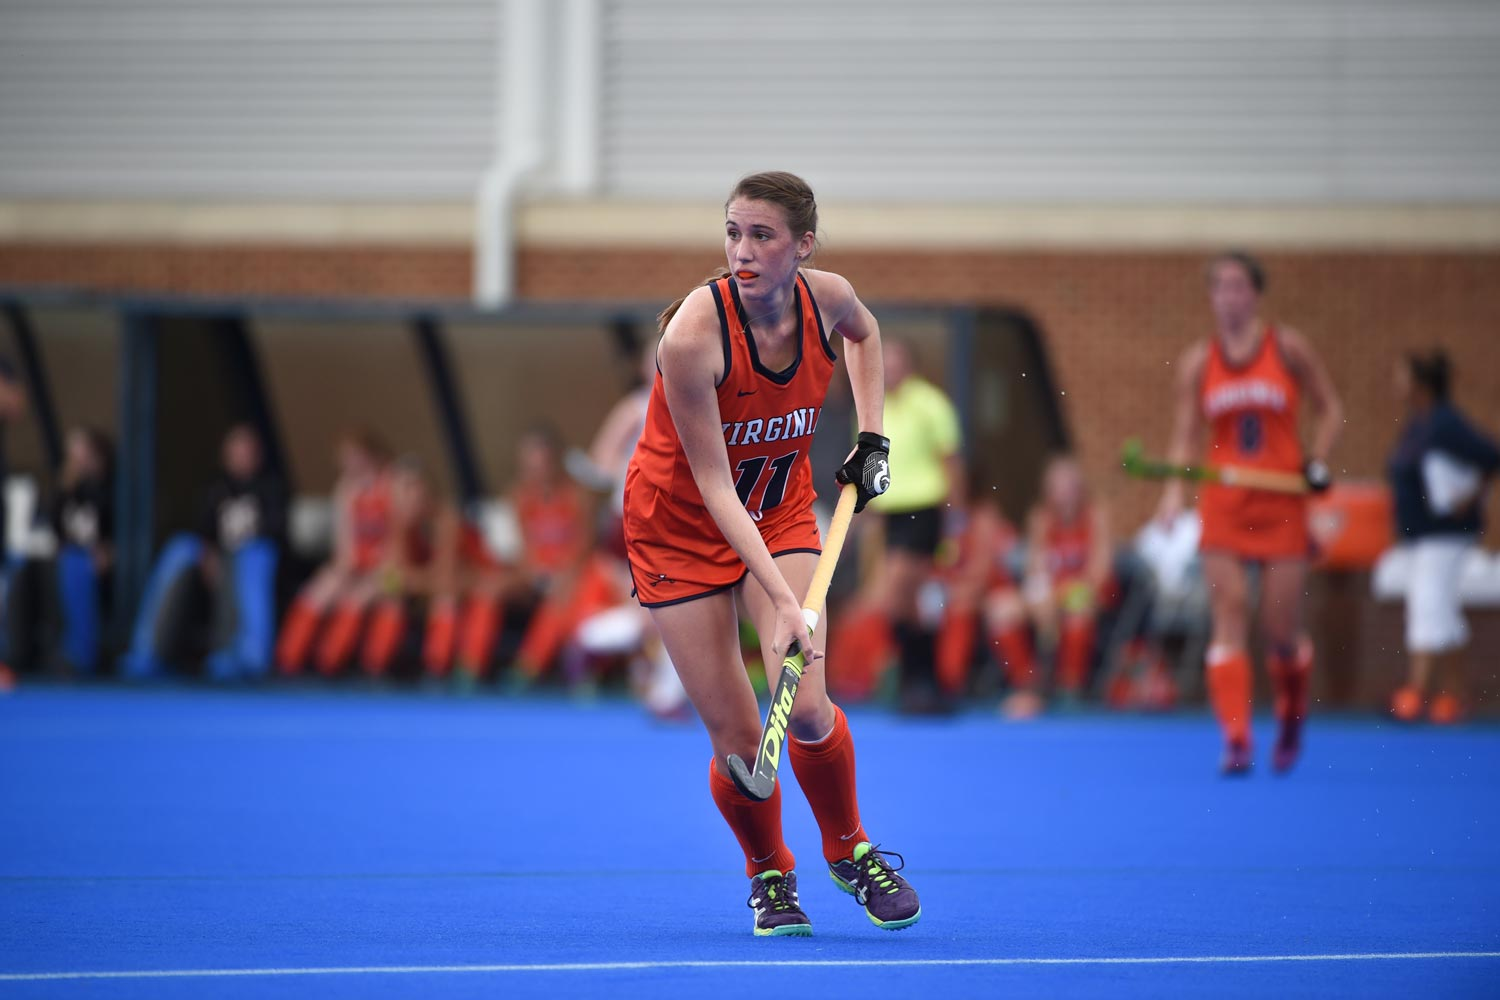 UVA second-year Catesby Willis wears the same No. 11 for the field hockey team that Phoebe wore during her playing days.